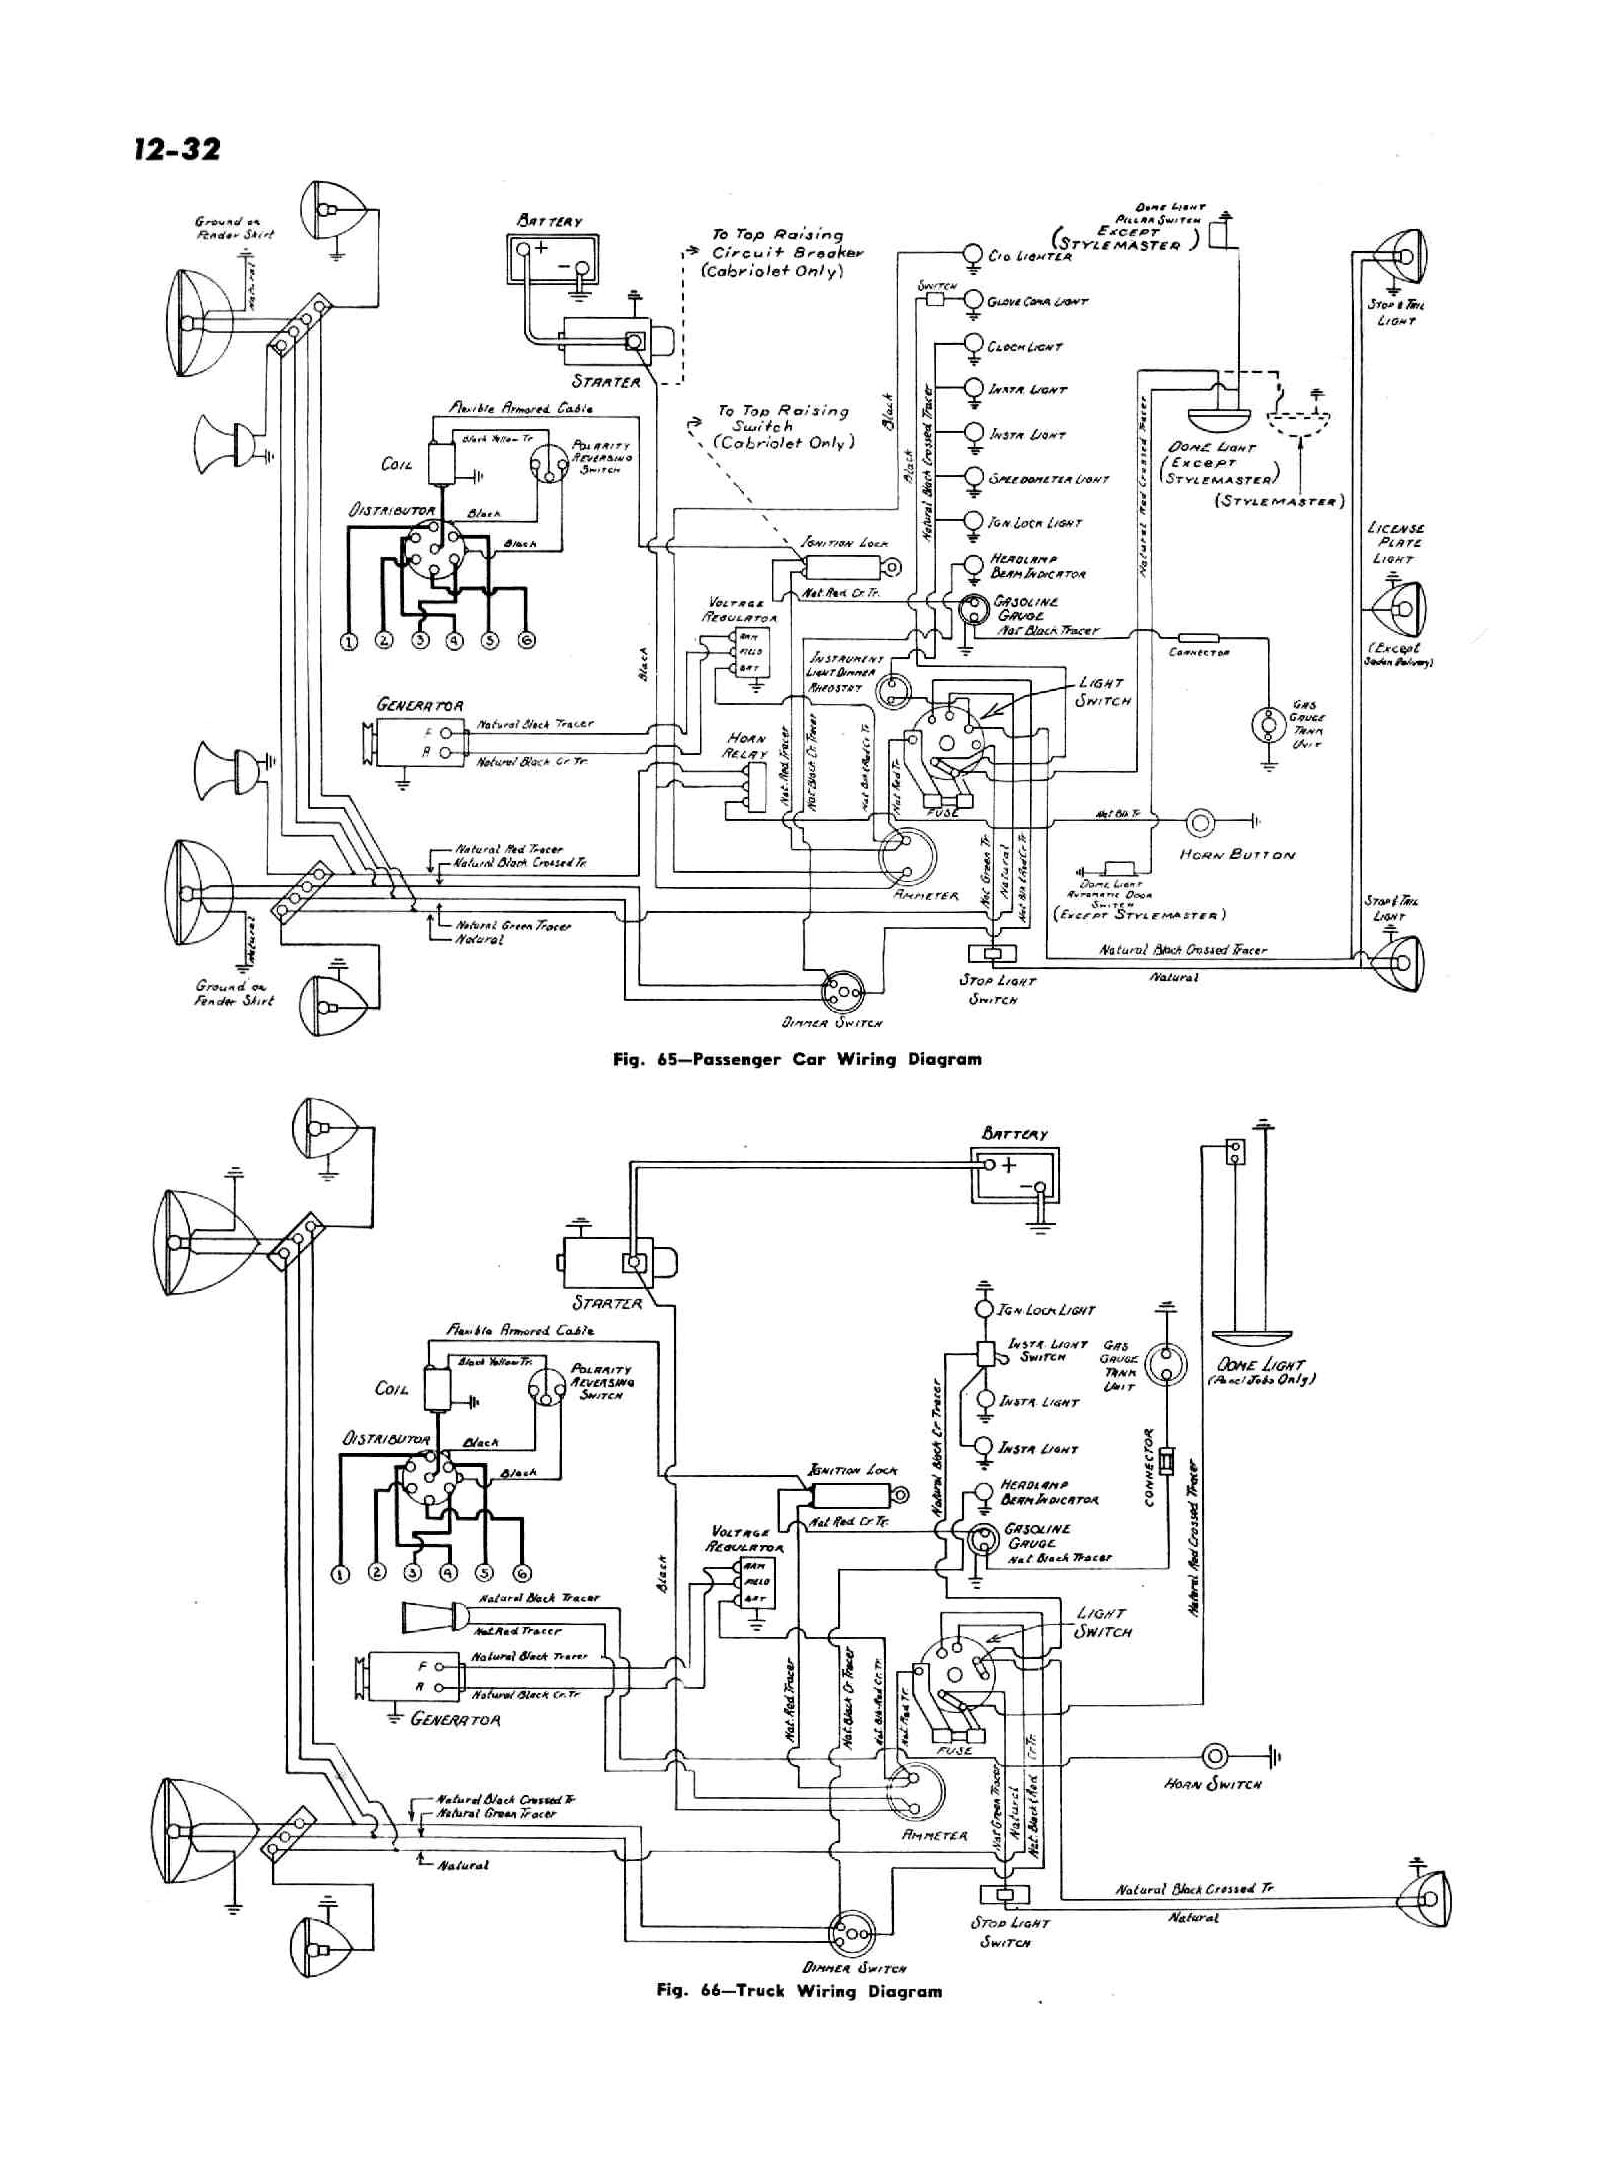 ih 706 wiring diagram 1965 wiring library diagram a2 farmall 706 wiring diagram ih 400 [ 1600 x 2164 Pixel ]